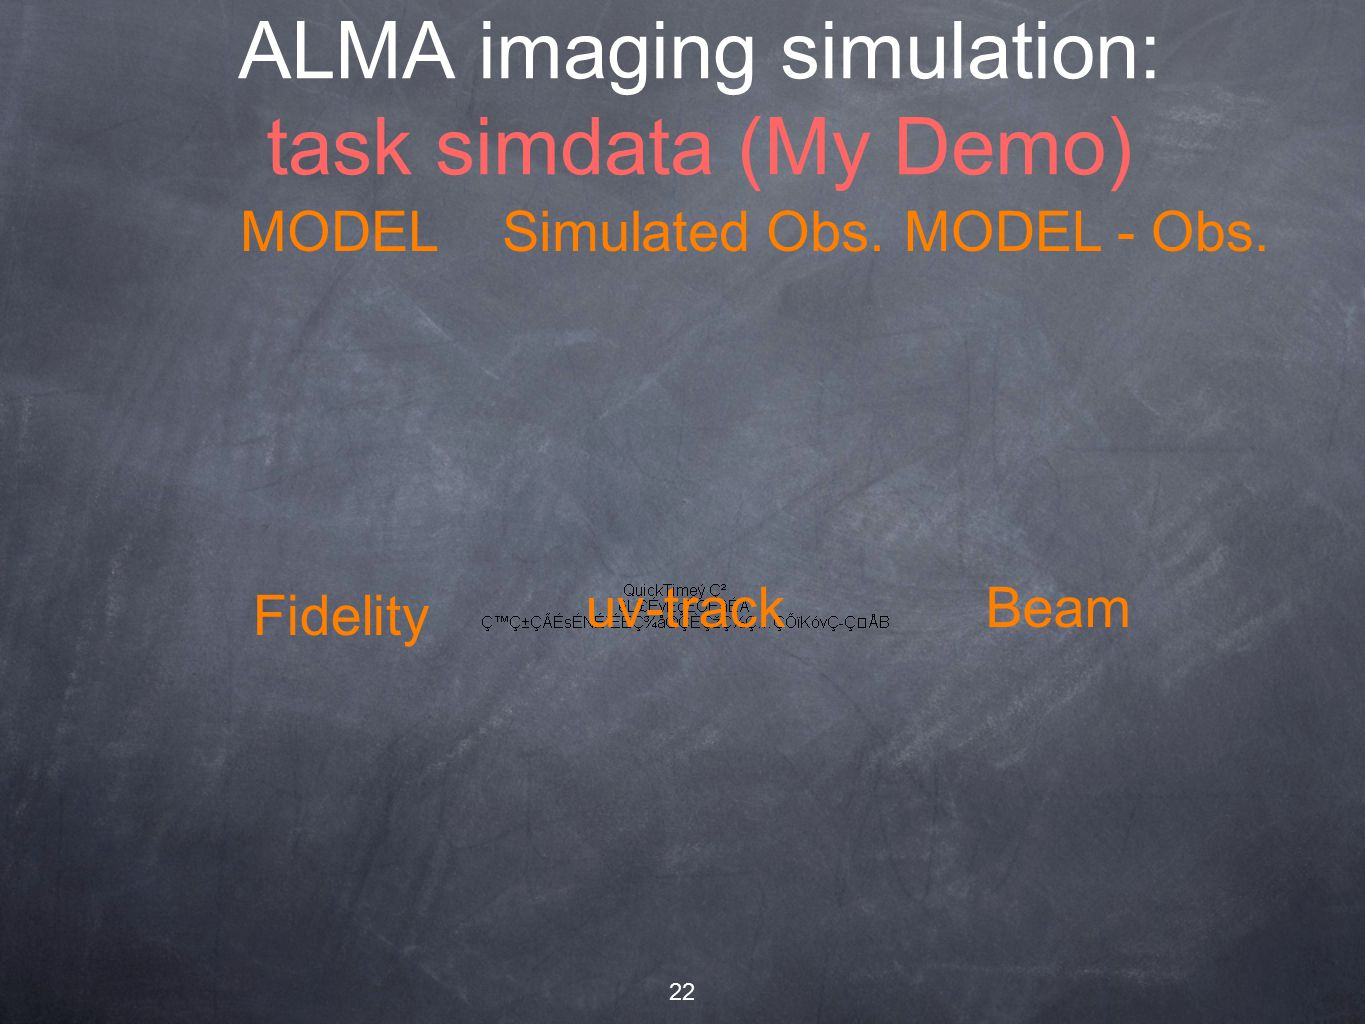 22 ALMA imaging simulation: task simdata (My Demo) MODELSimulated Obs.MODEL - Obs.